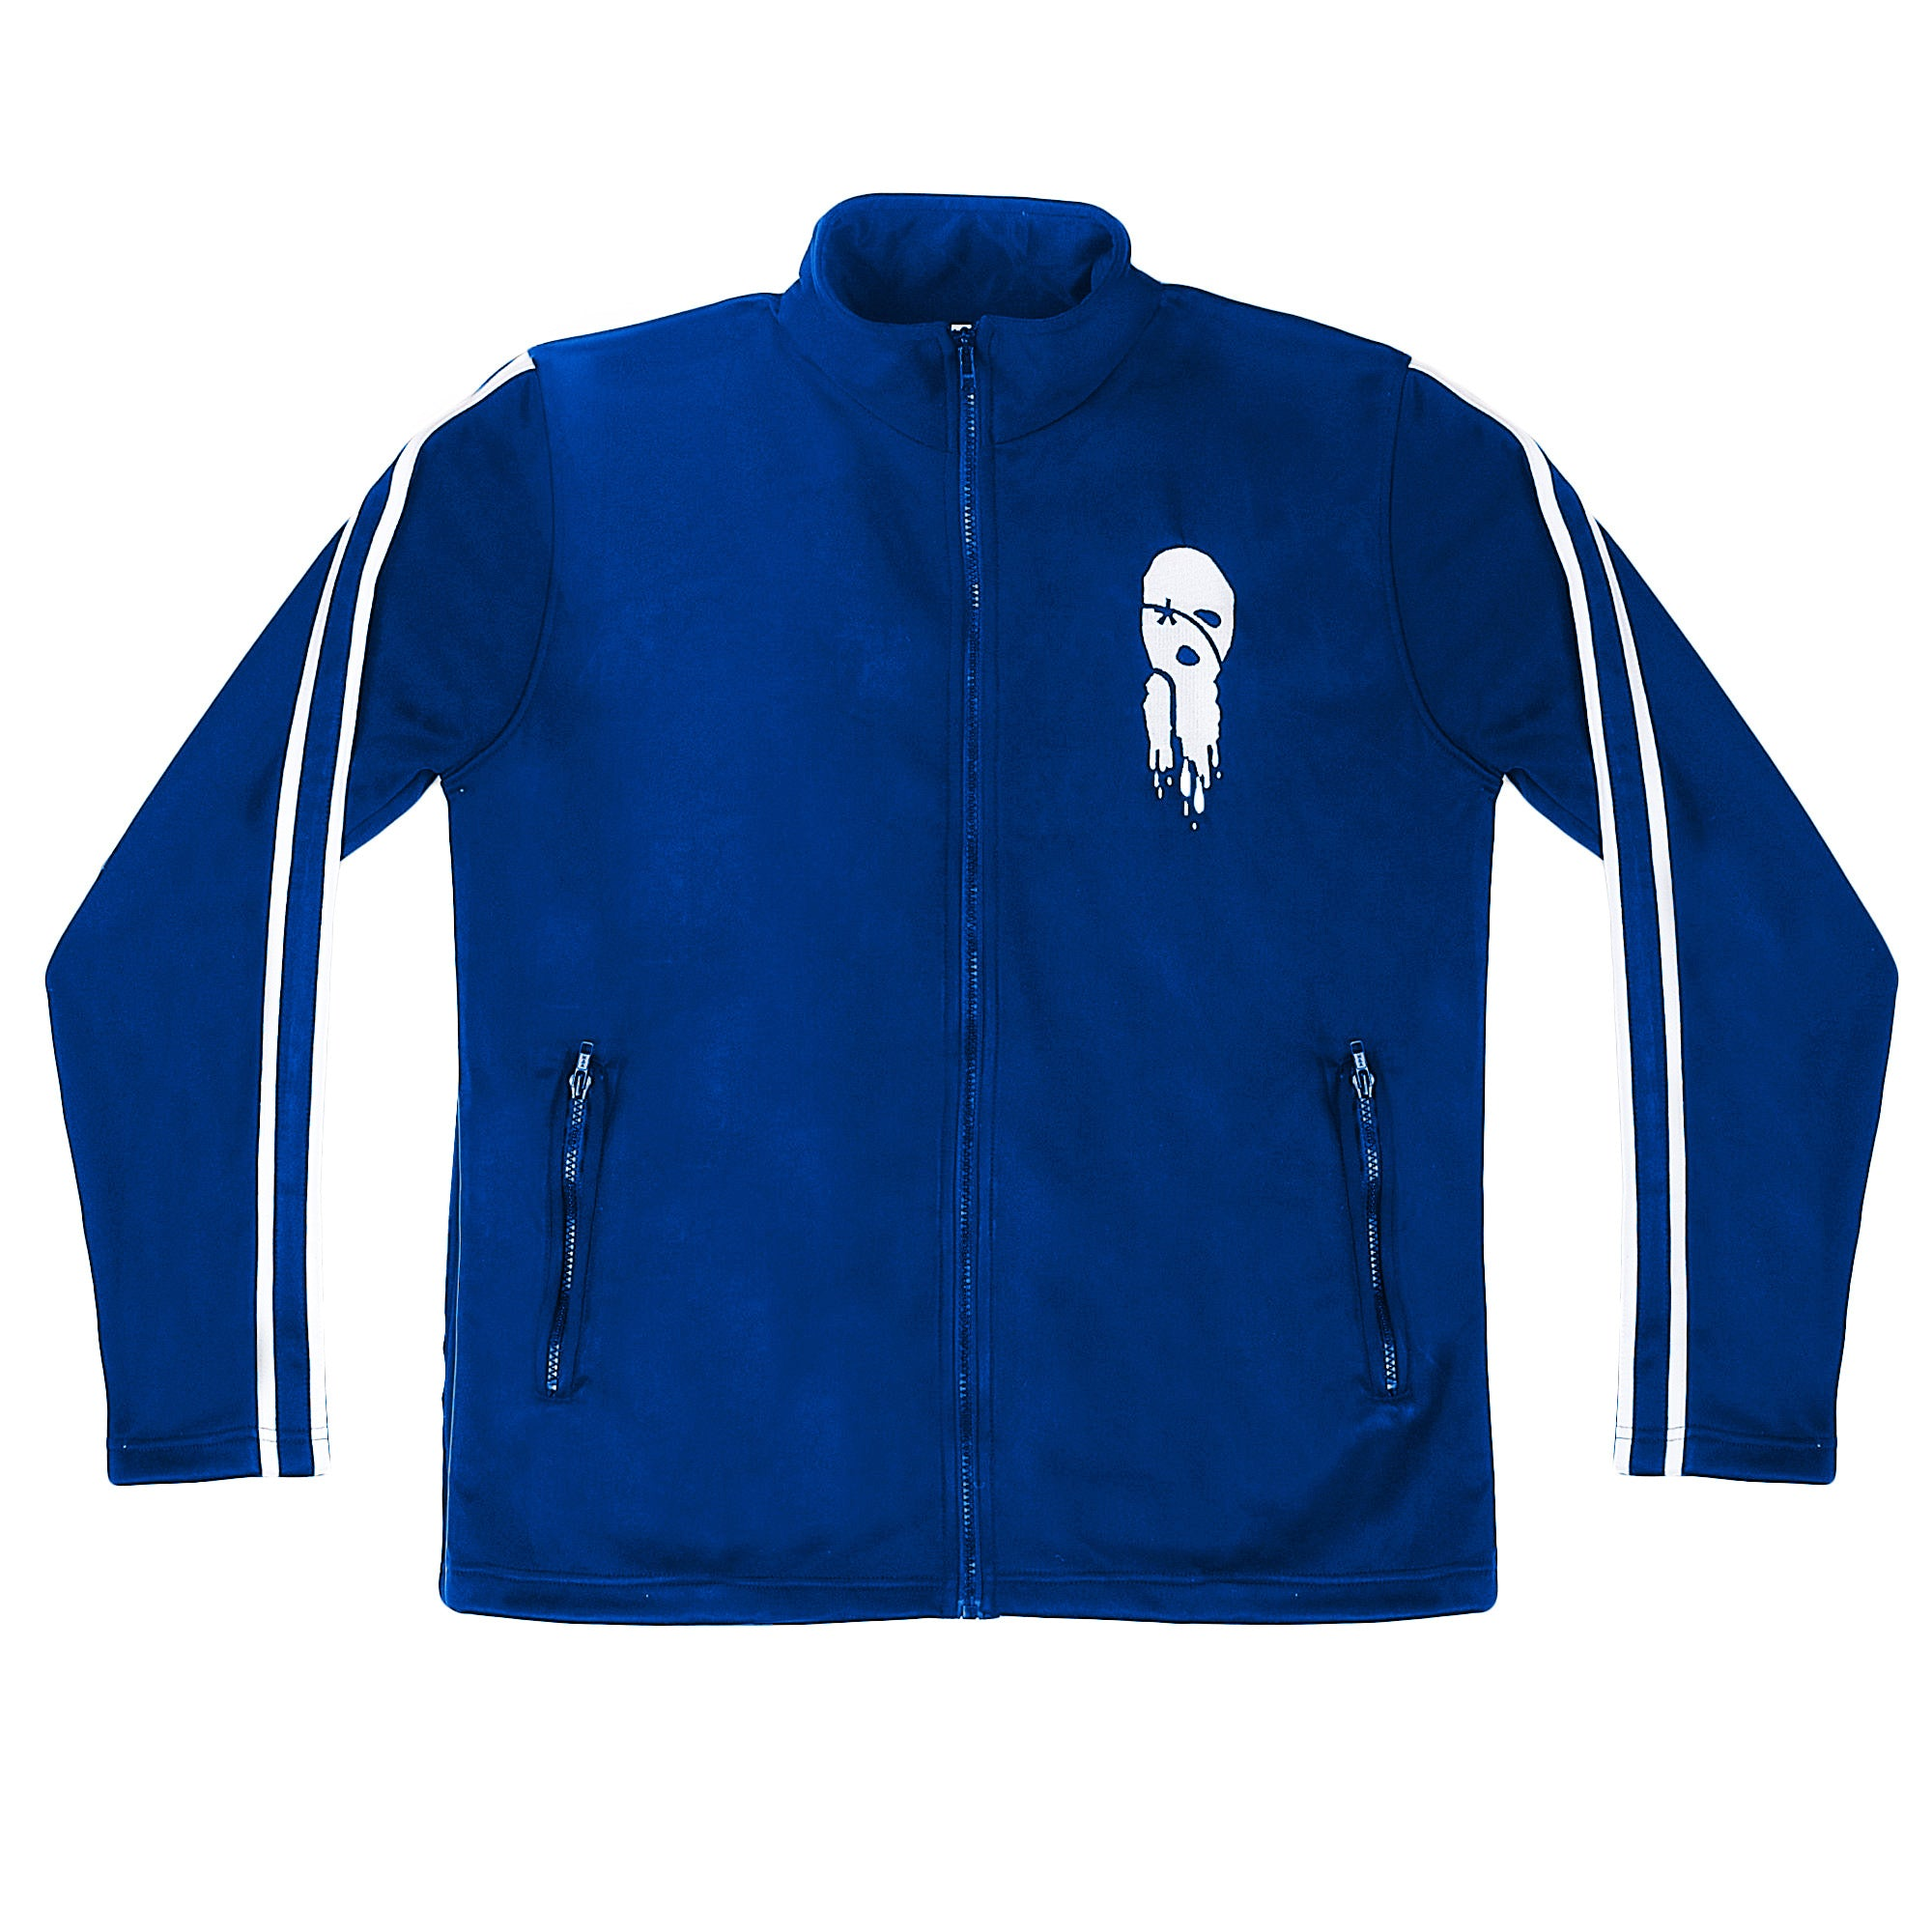 products/Royal_Trap_Jacket_Front.JPG